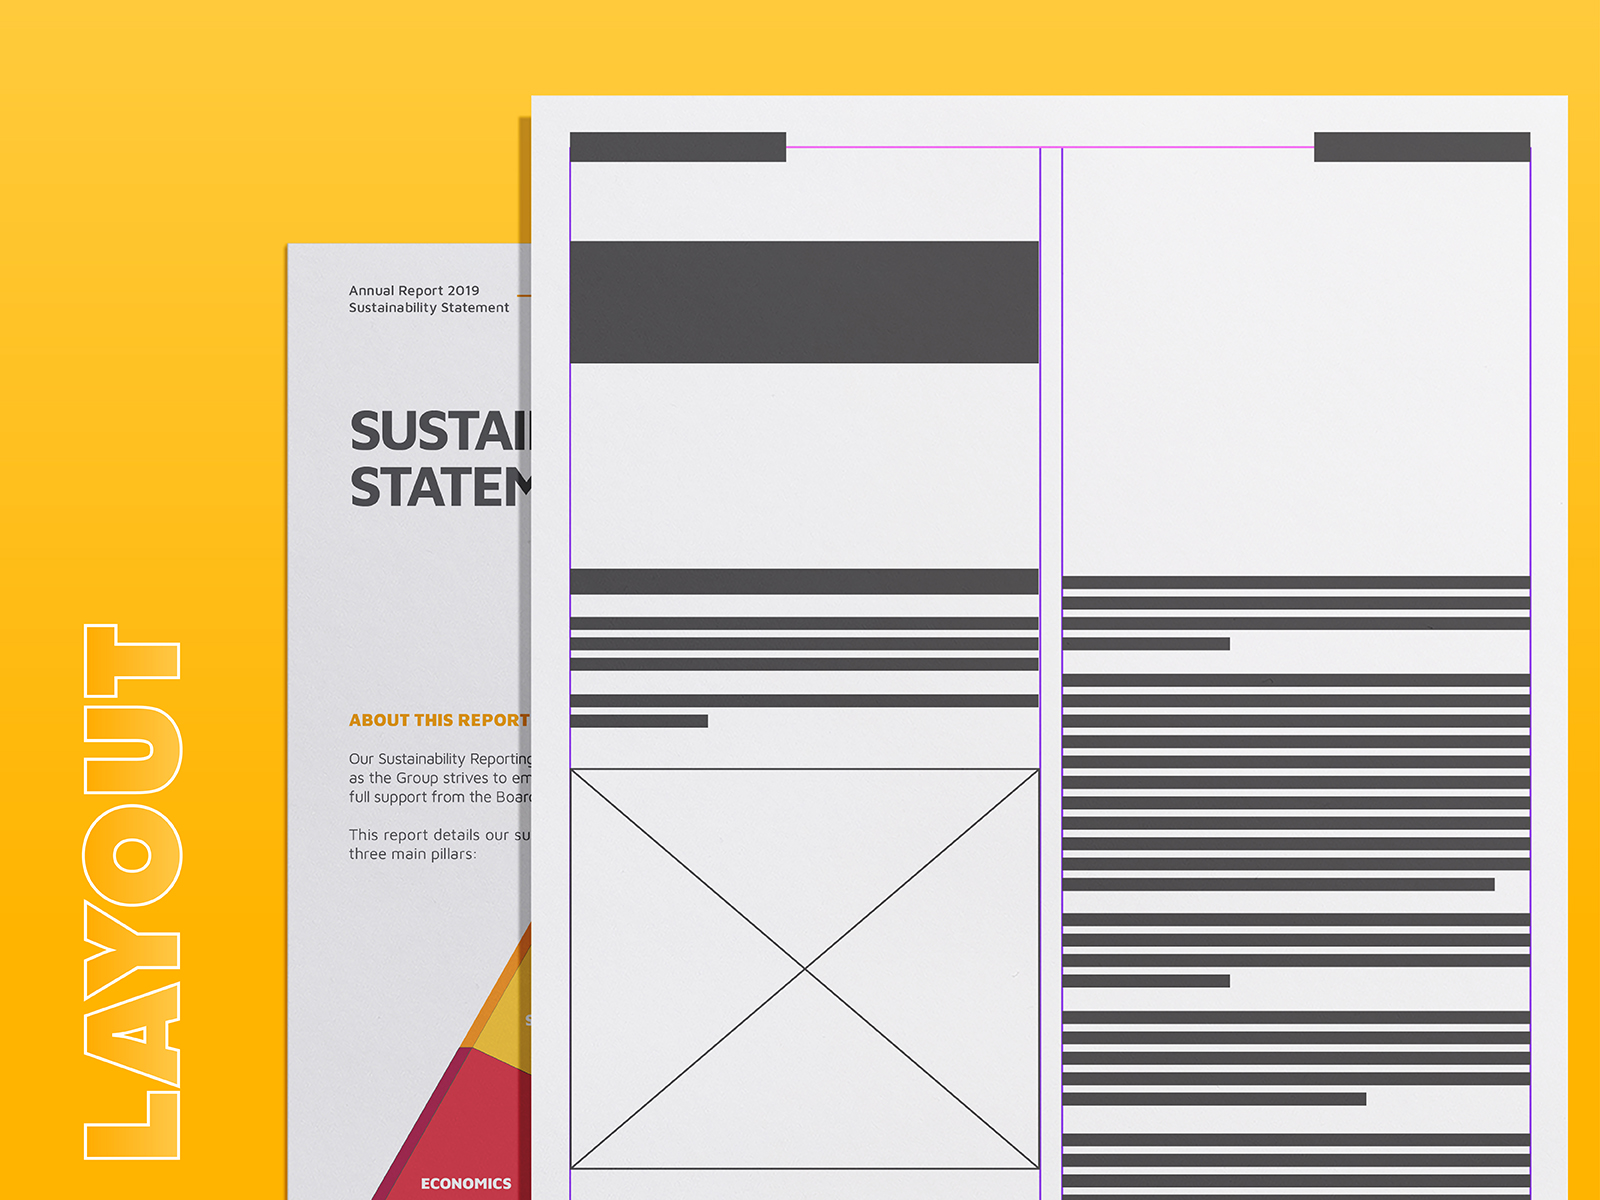 Plenitude annual report 2019 inner page layout design grid